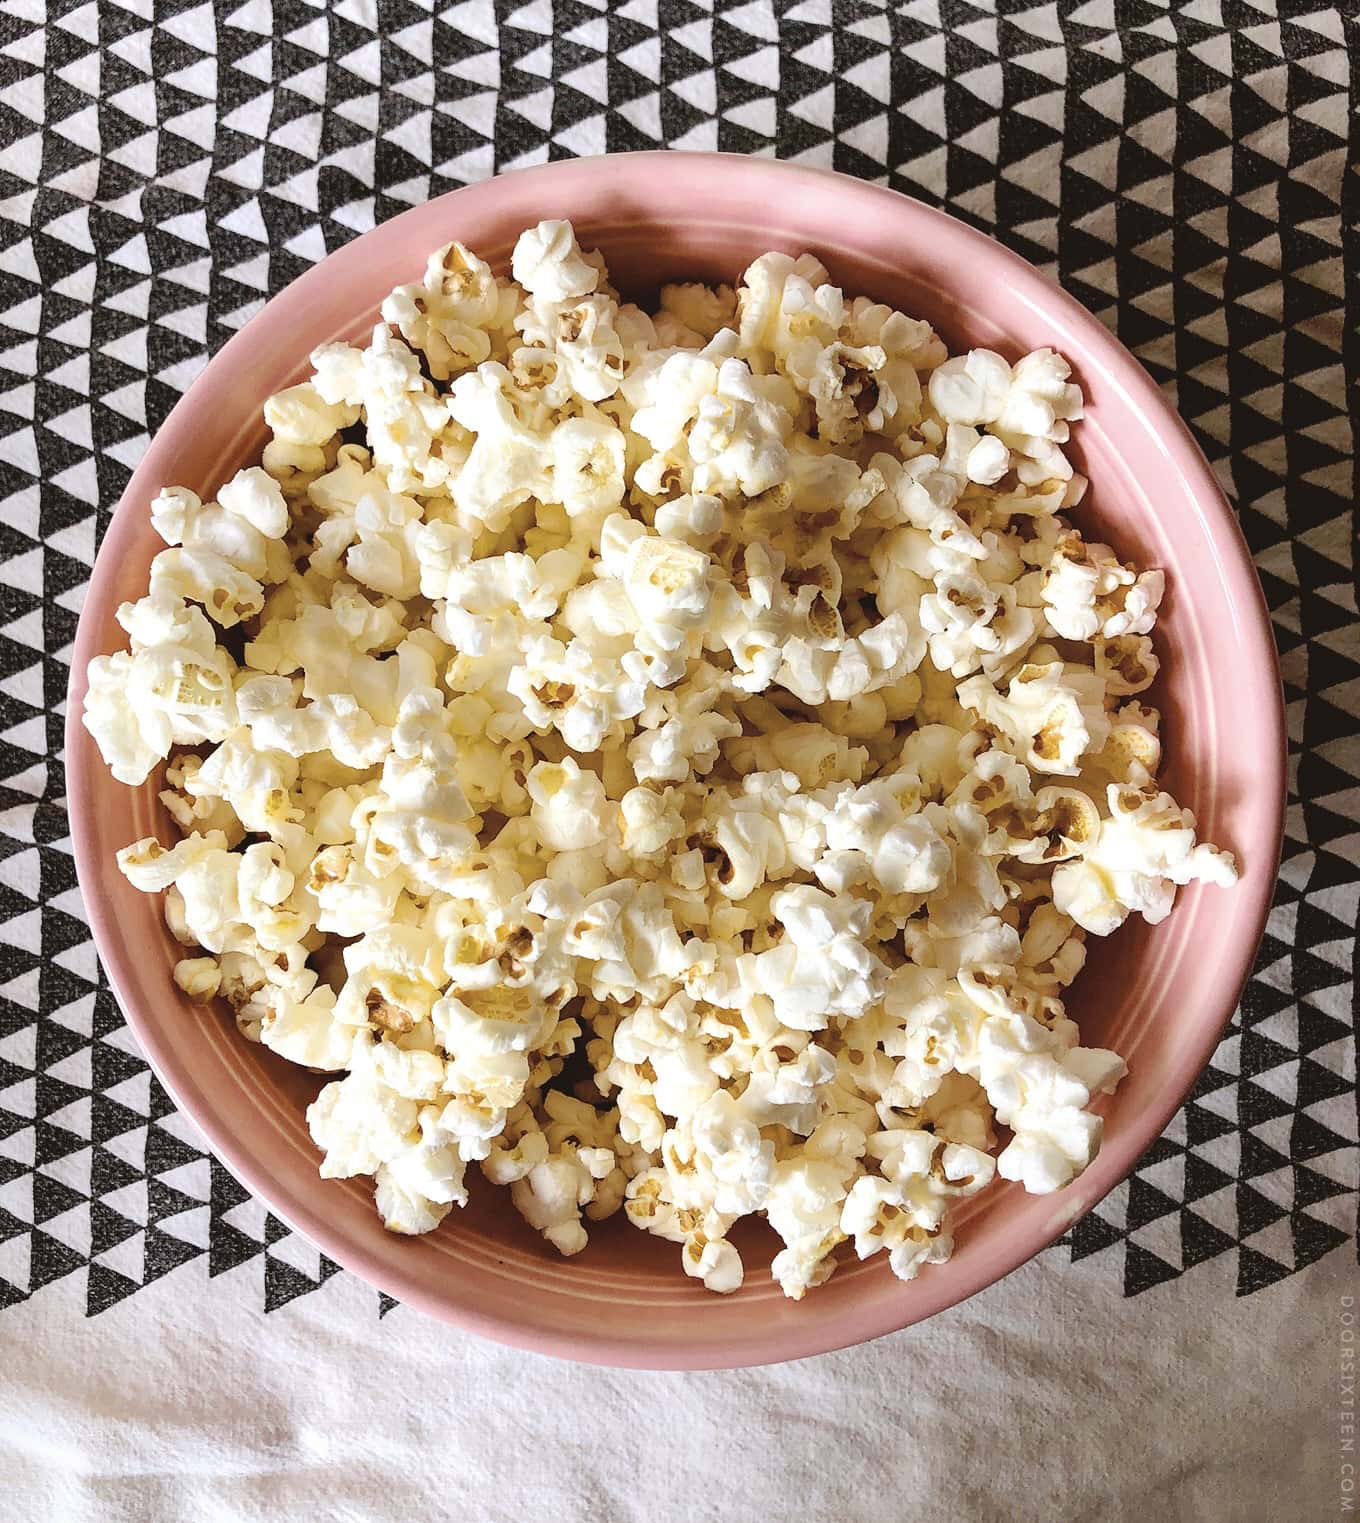 Movie theater popcorn at home - doorsixteen.com